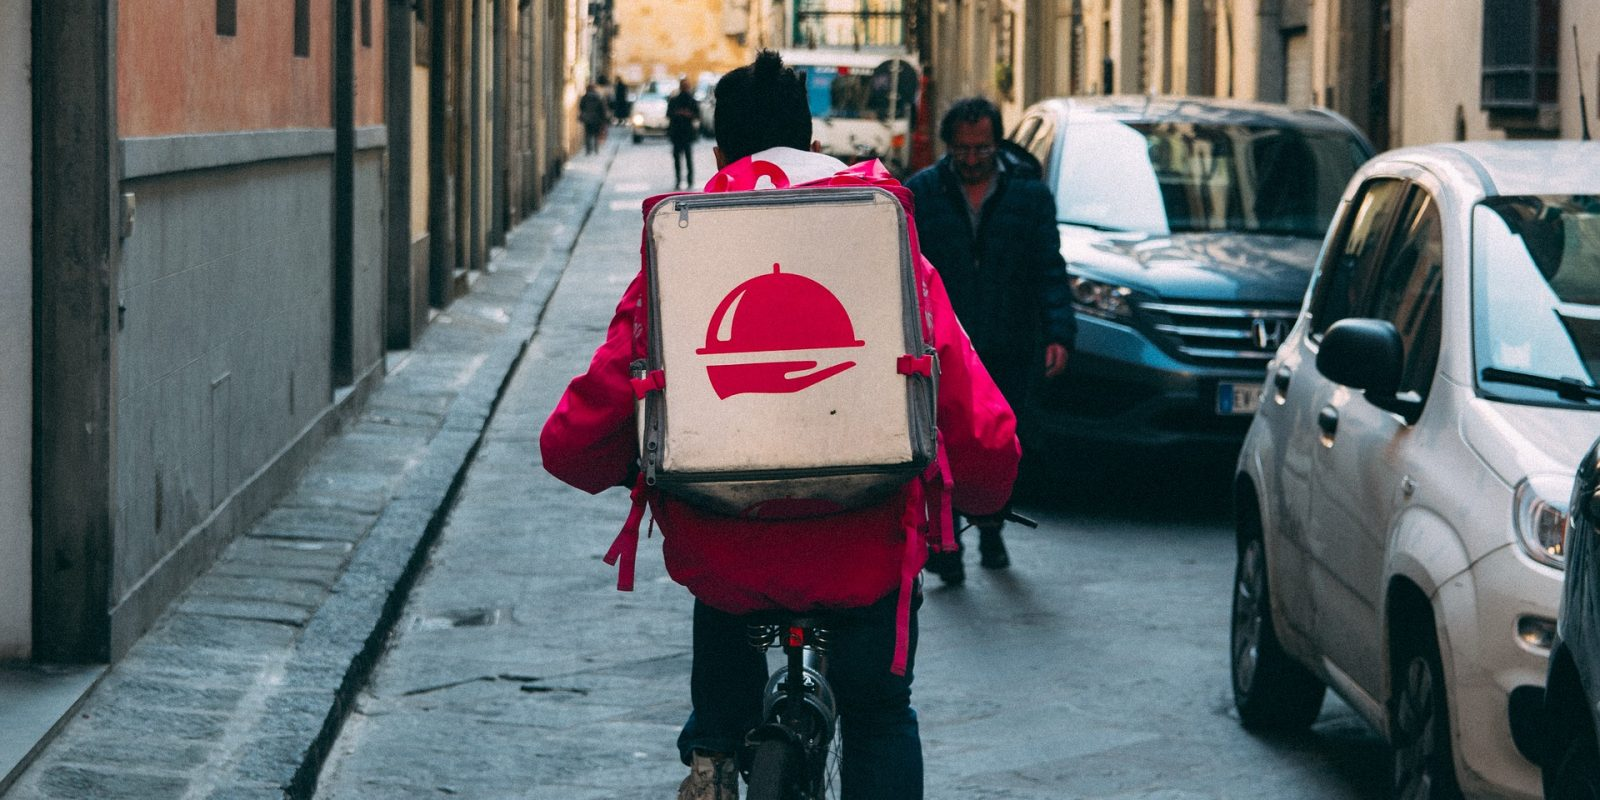 food delivery driver